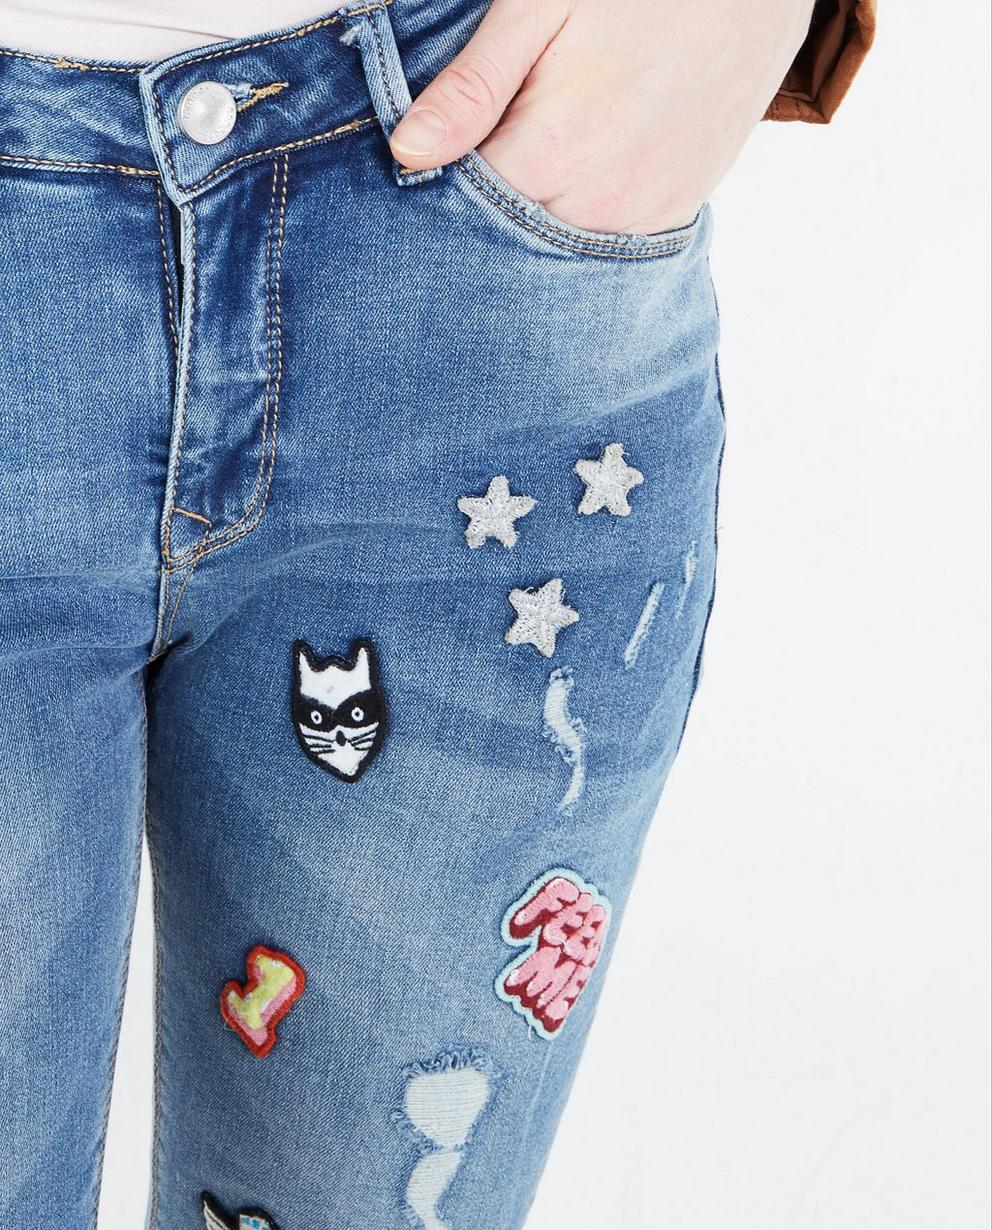 Jeans - BLM - Skinny jeans met patches